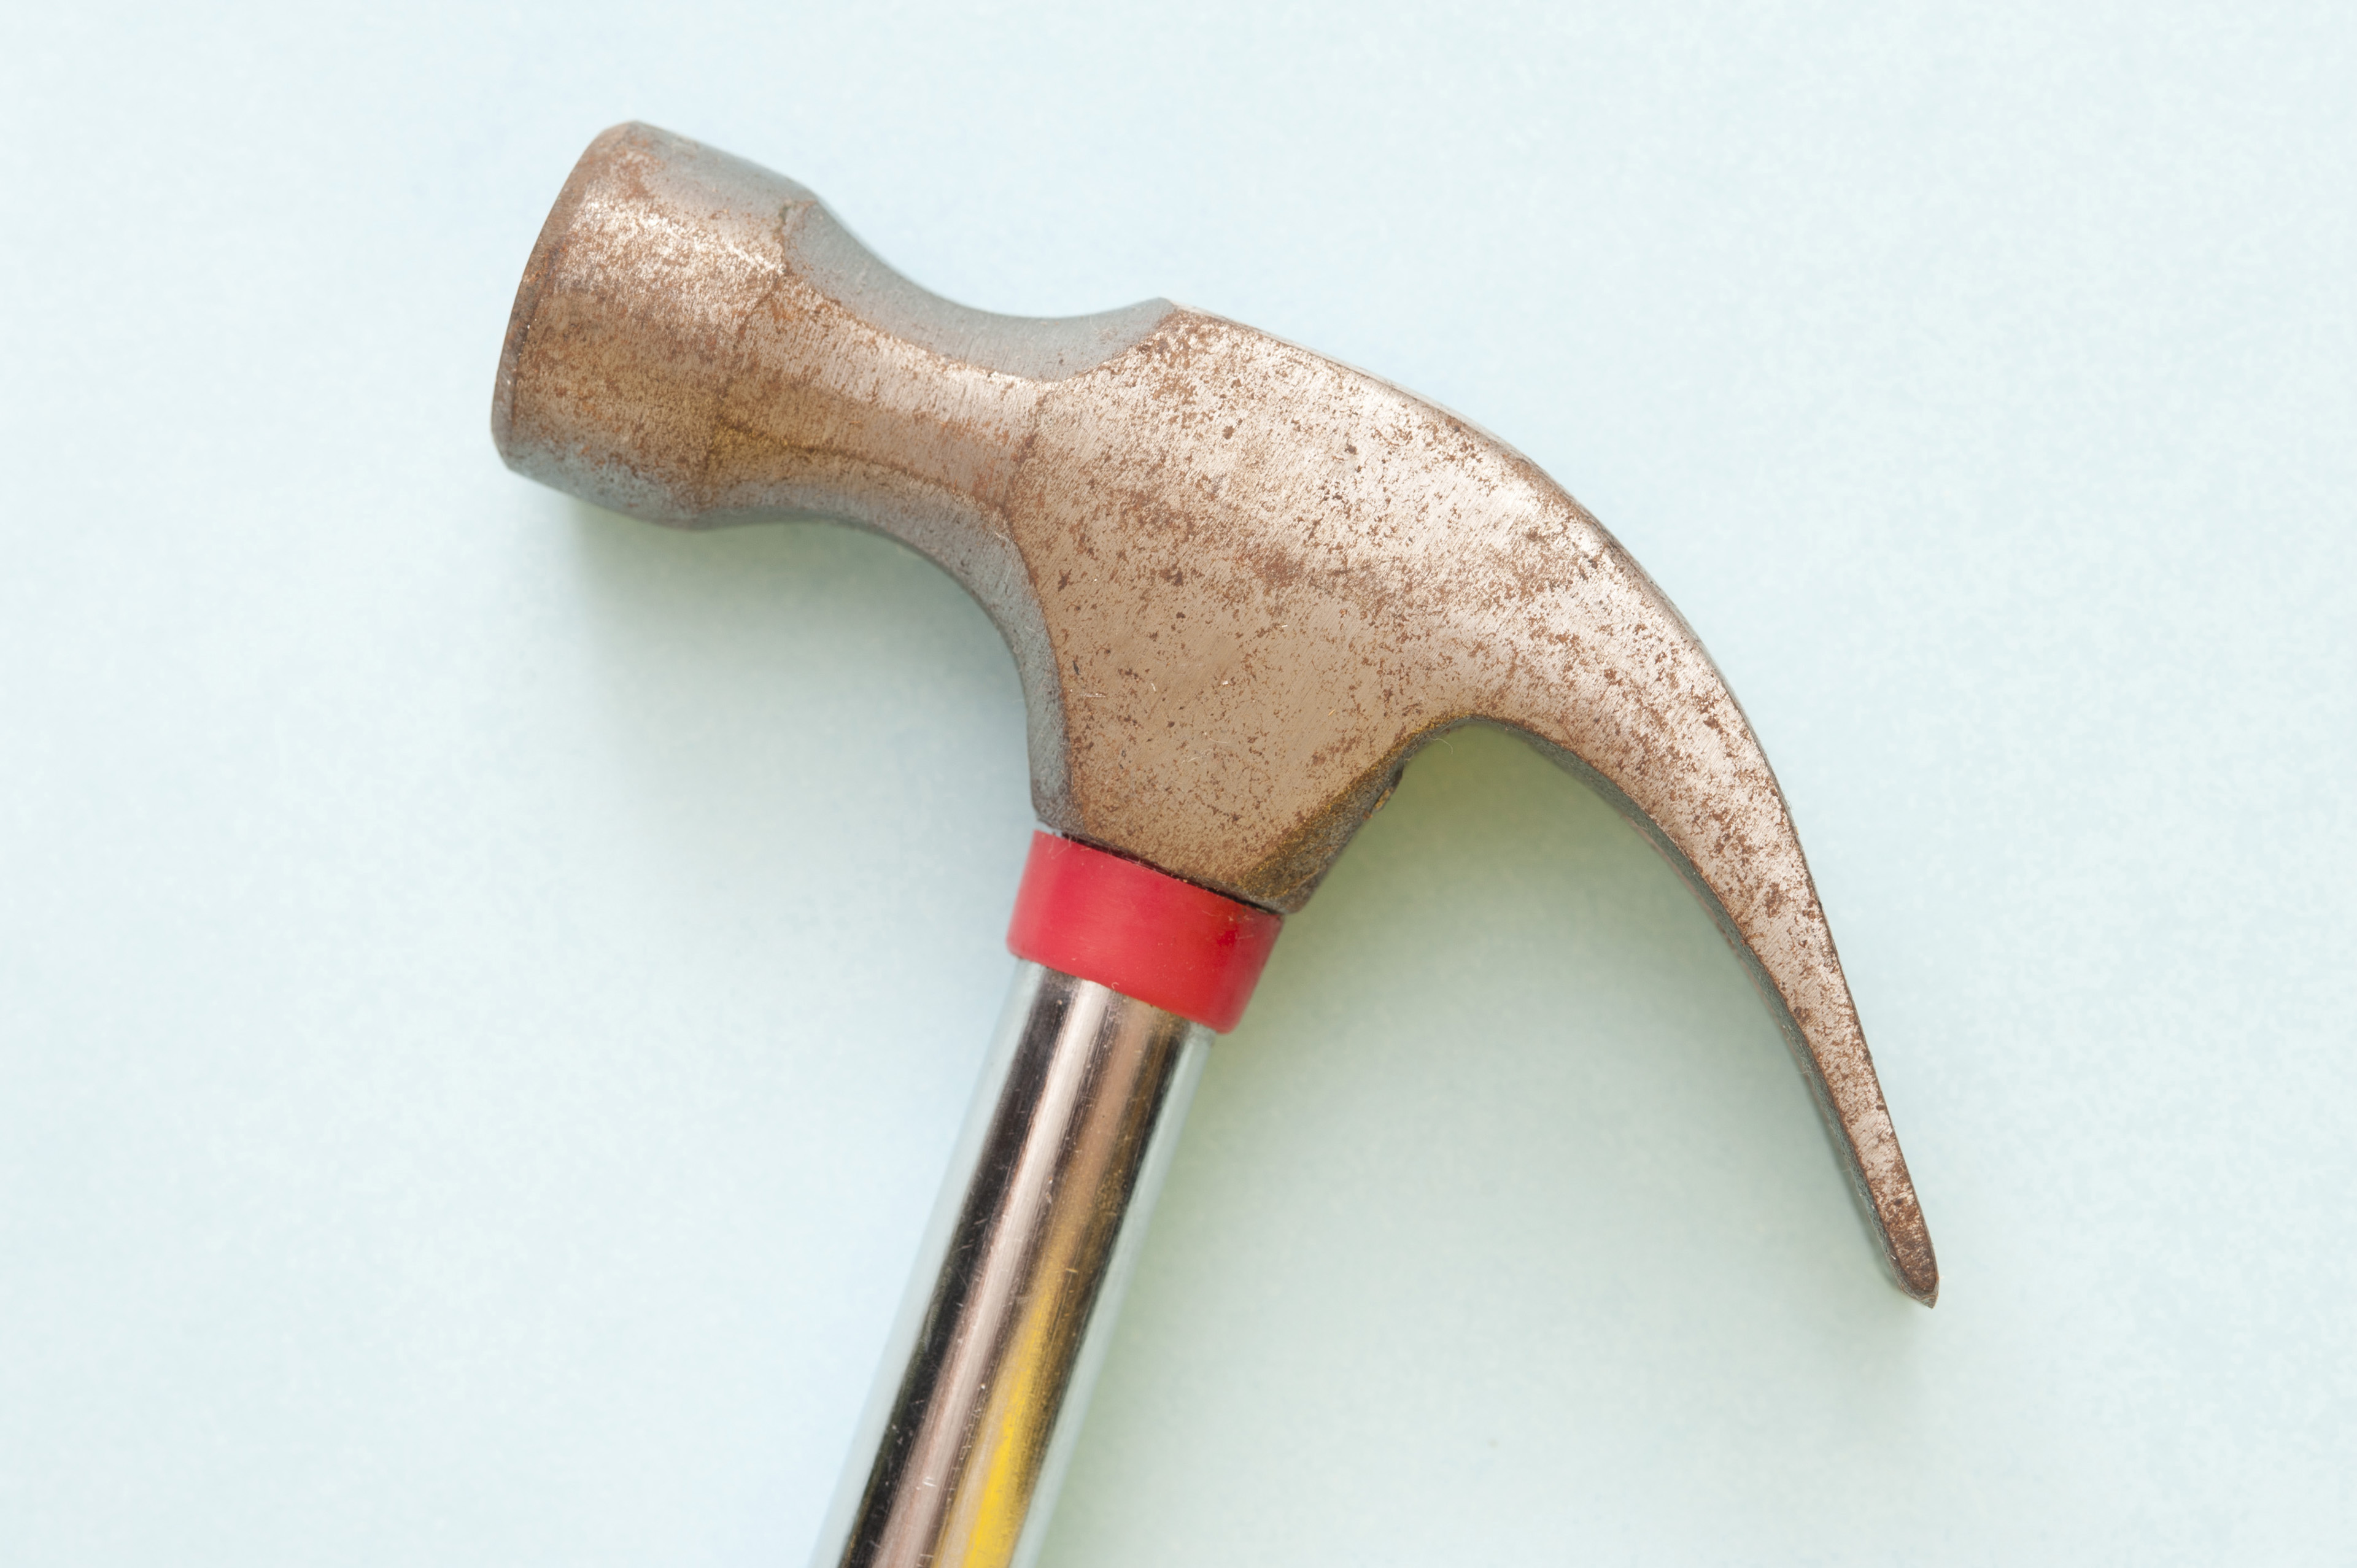 Side view of the head of a claw hammer on a white background in a woodworking, construction and DIY concept